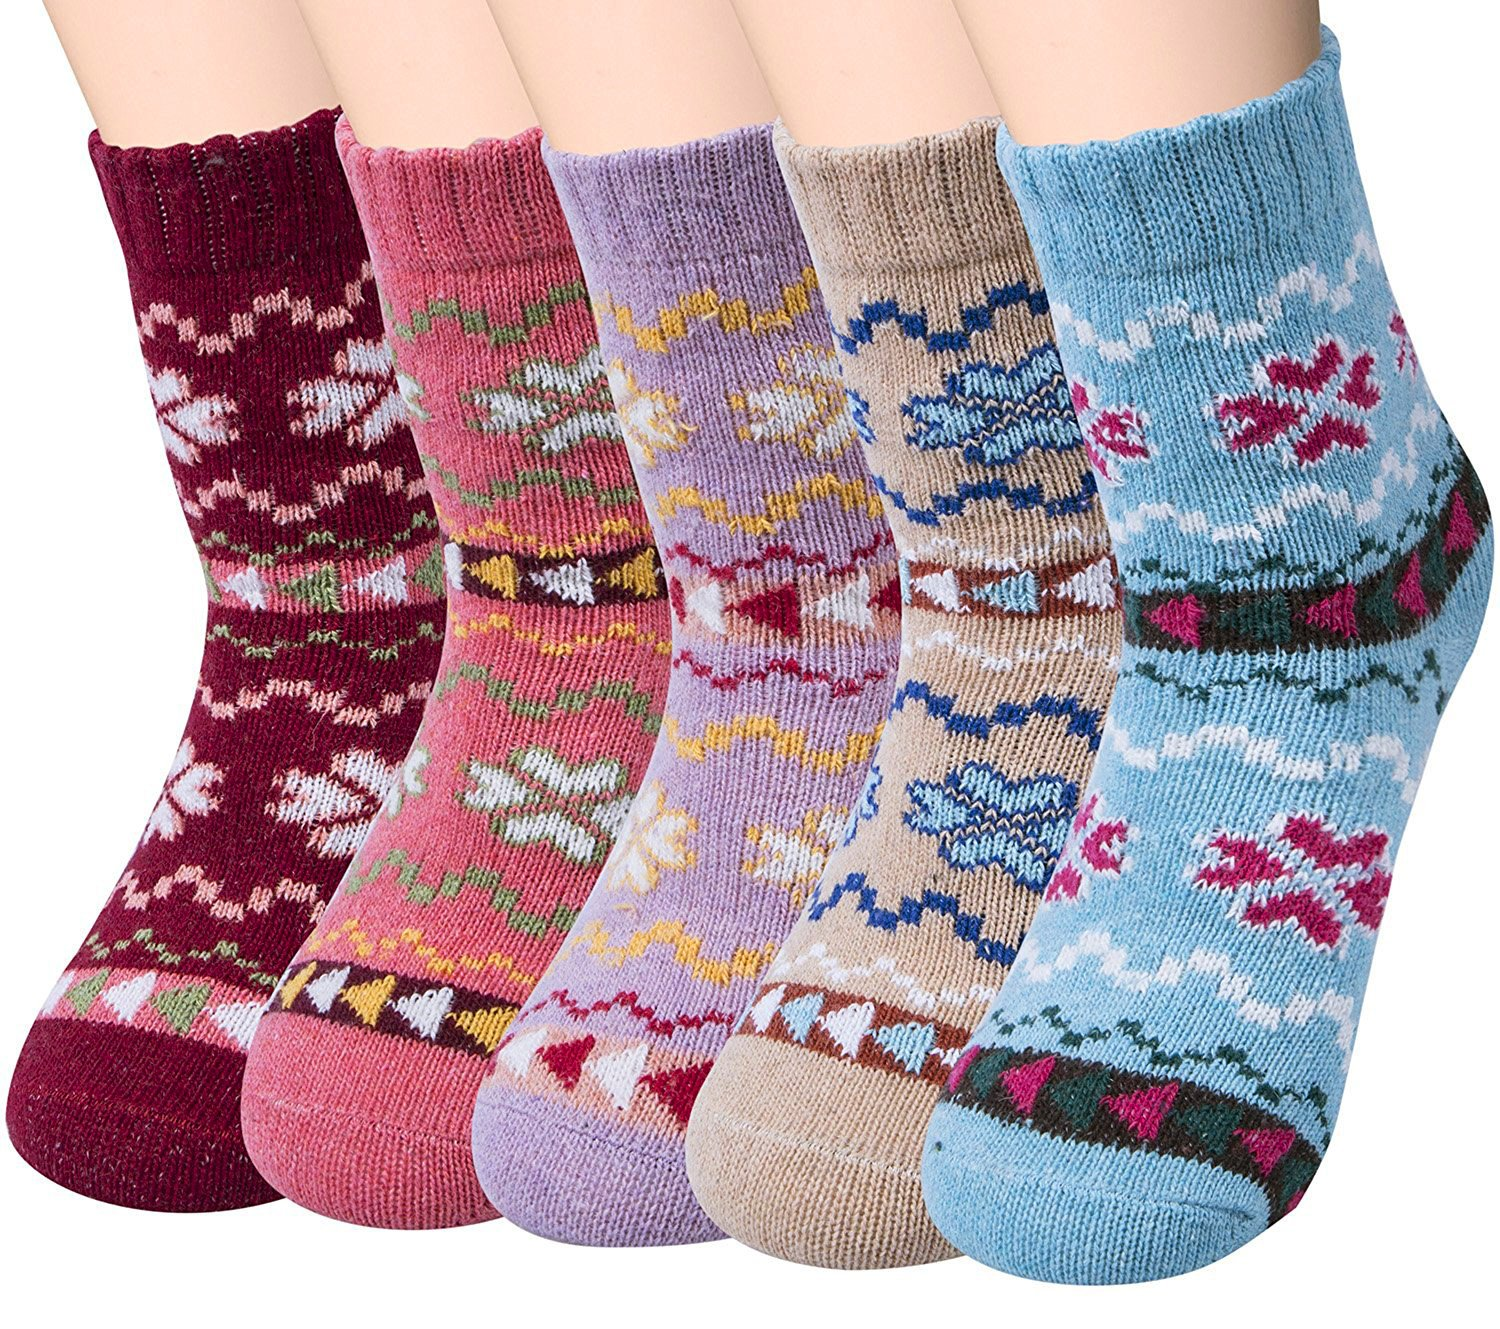 Loritta 5 Pairs Womens Vintage Style Winter Soft Warm Thick Knit Wool Crew Socks,Multicolor 03,One Size